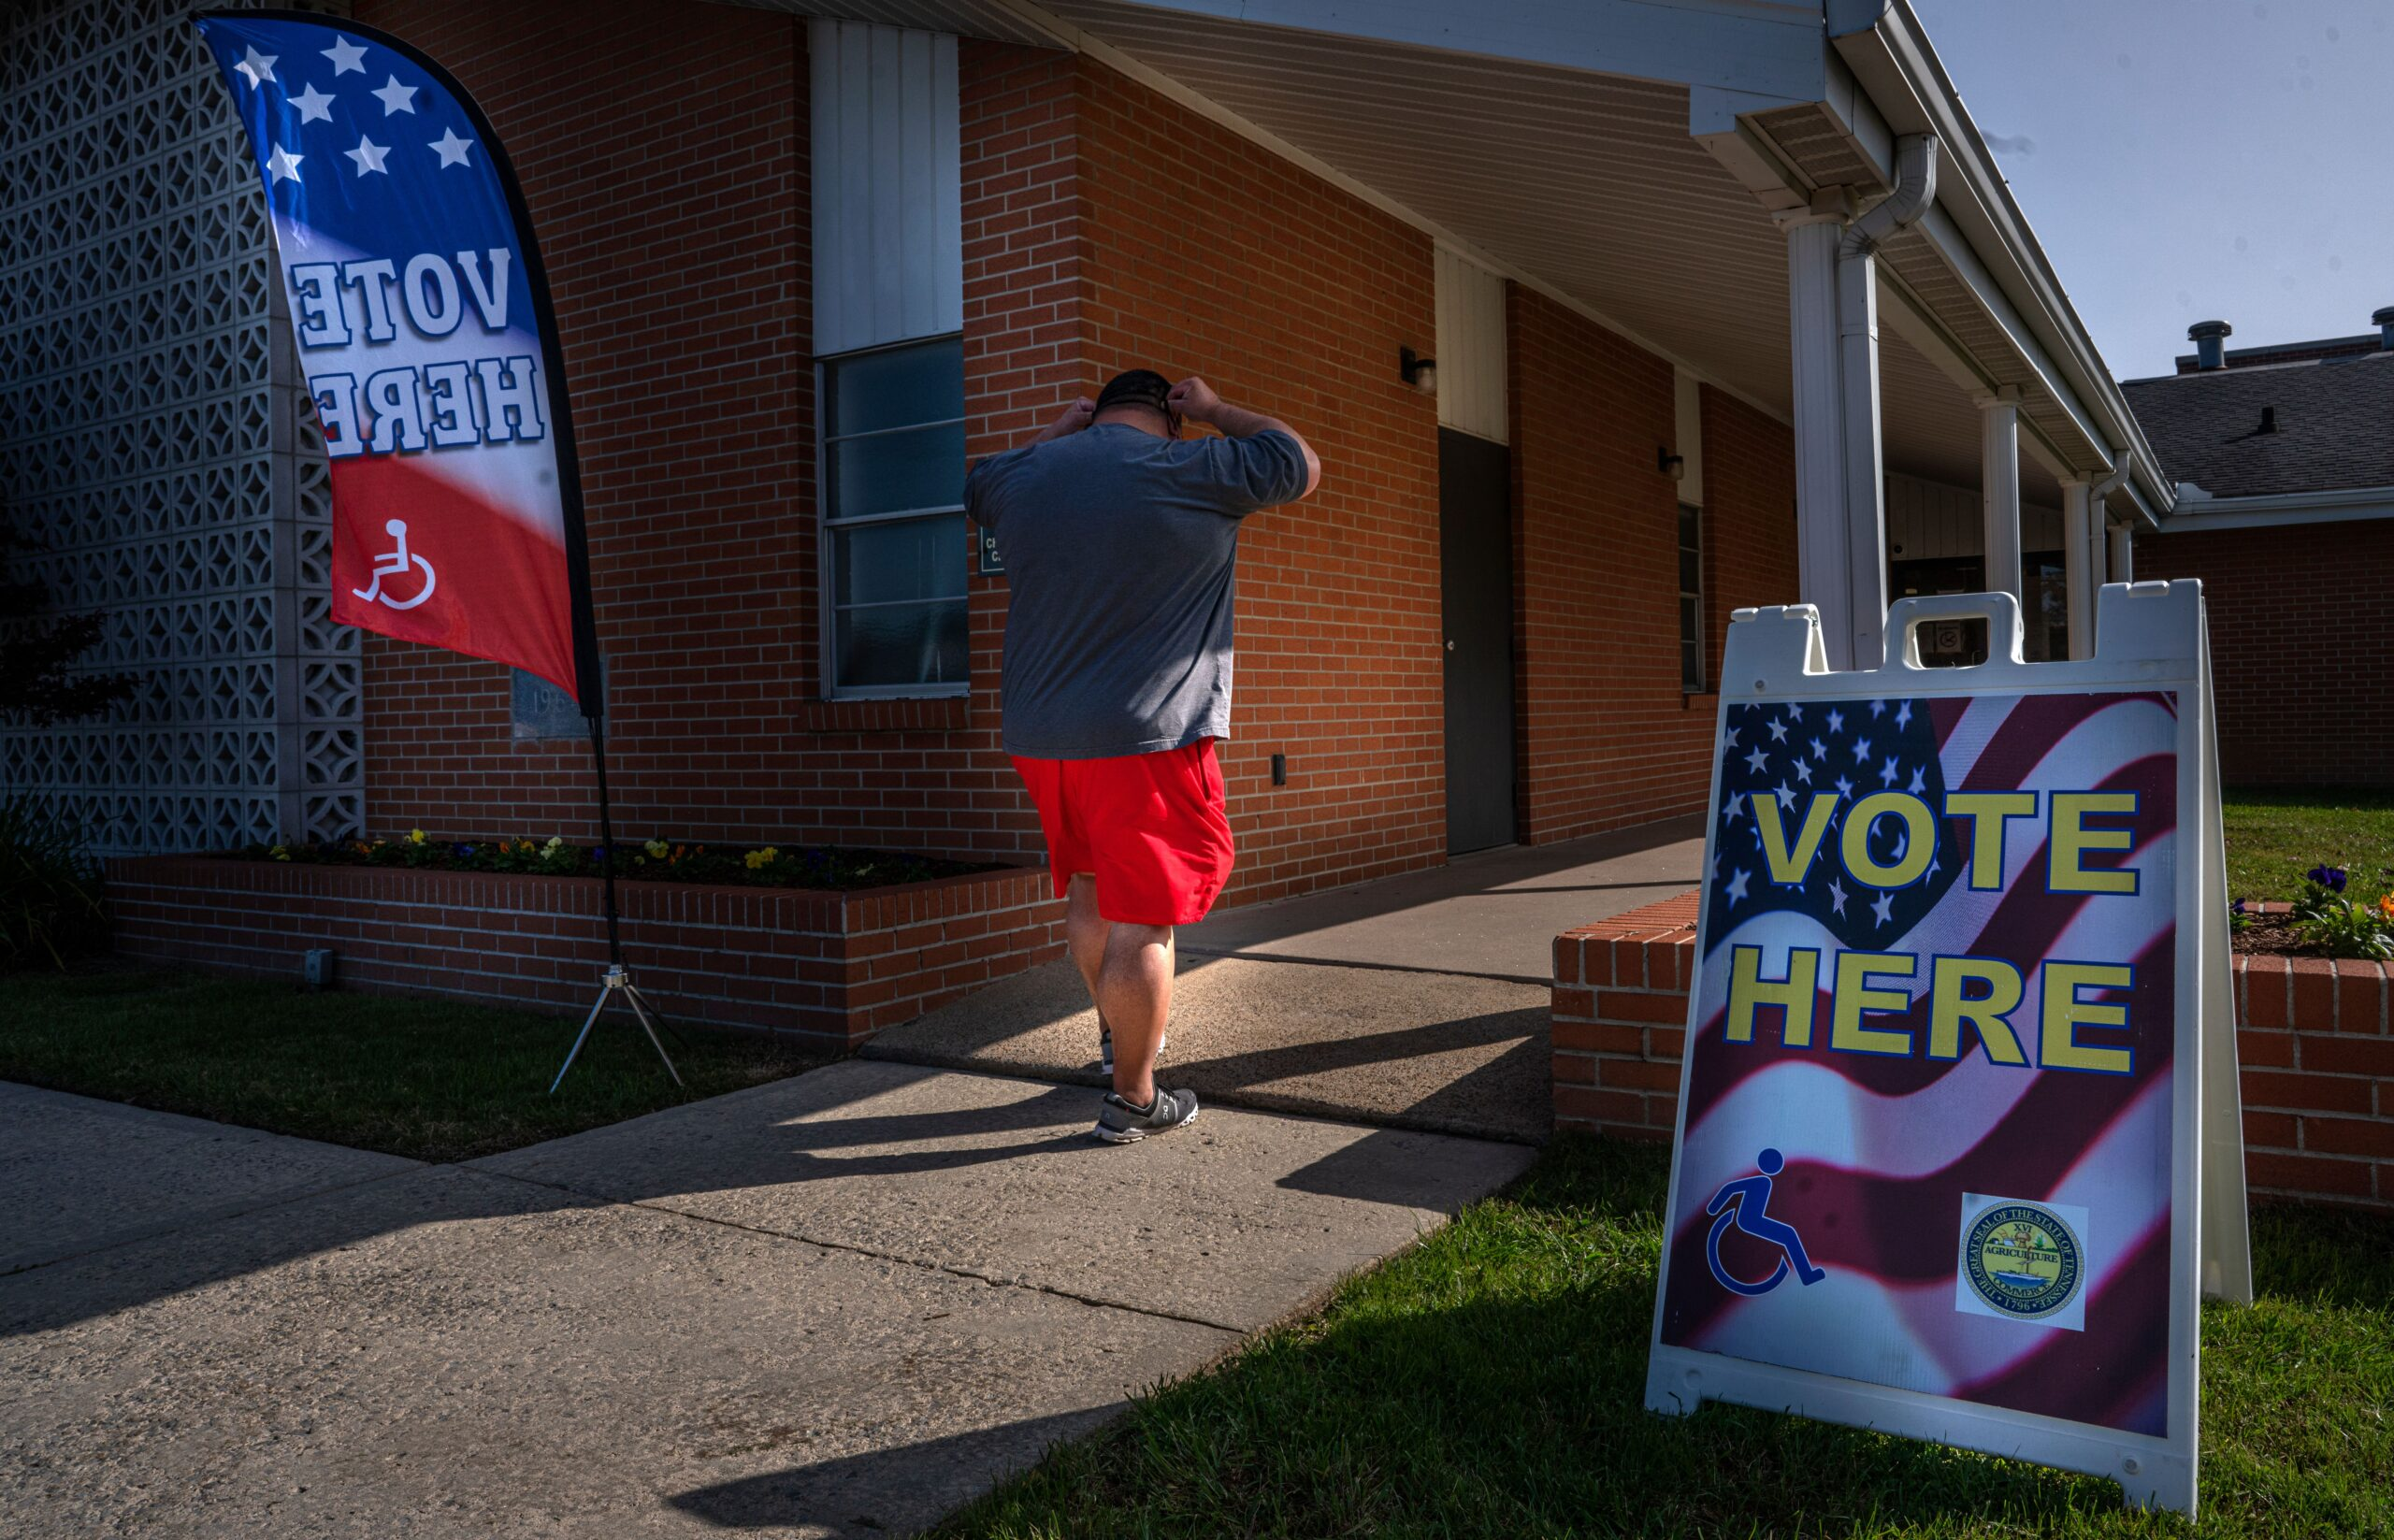 As GOP shifts strategy from election lawsuits to laws, voting rights advocates issue warnings